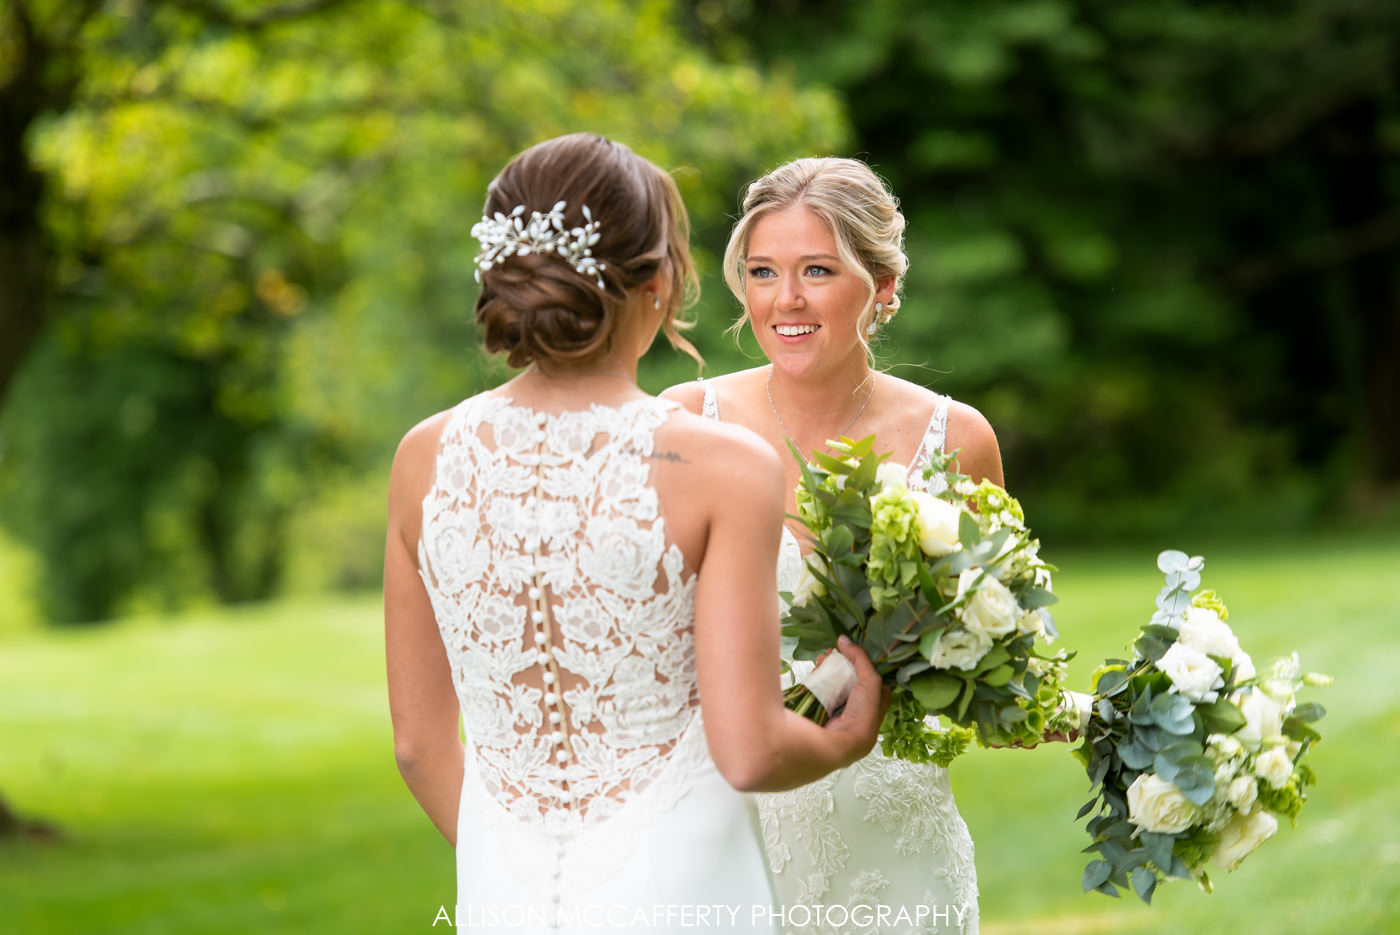 Woodcrest Country Club First Look Photos with Two Brides